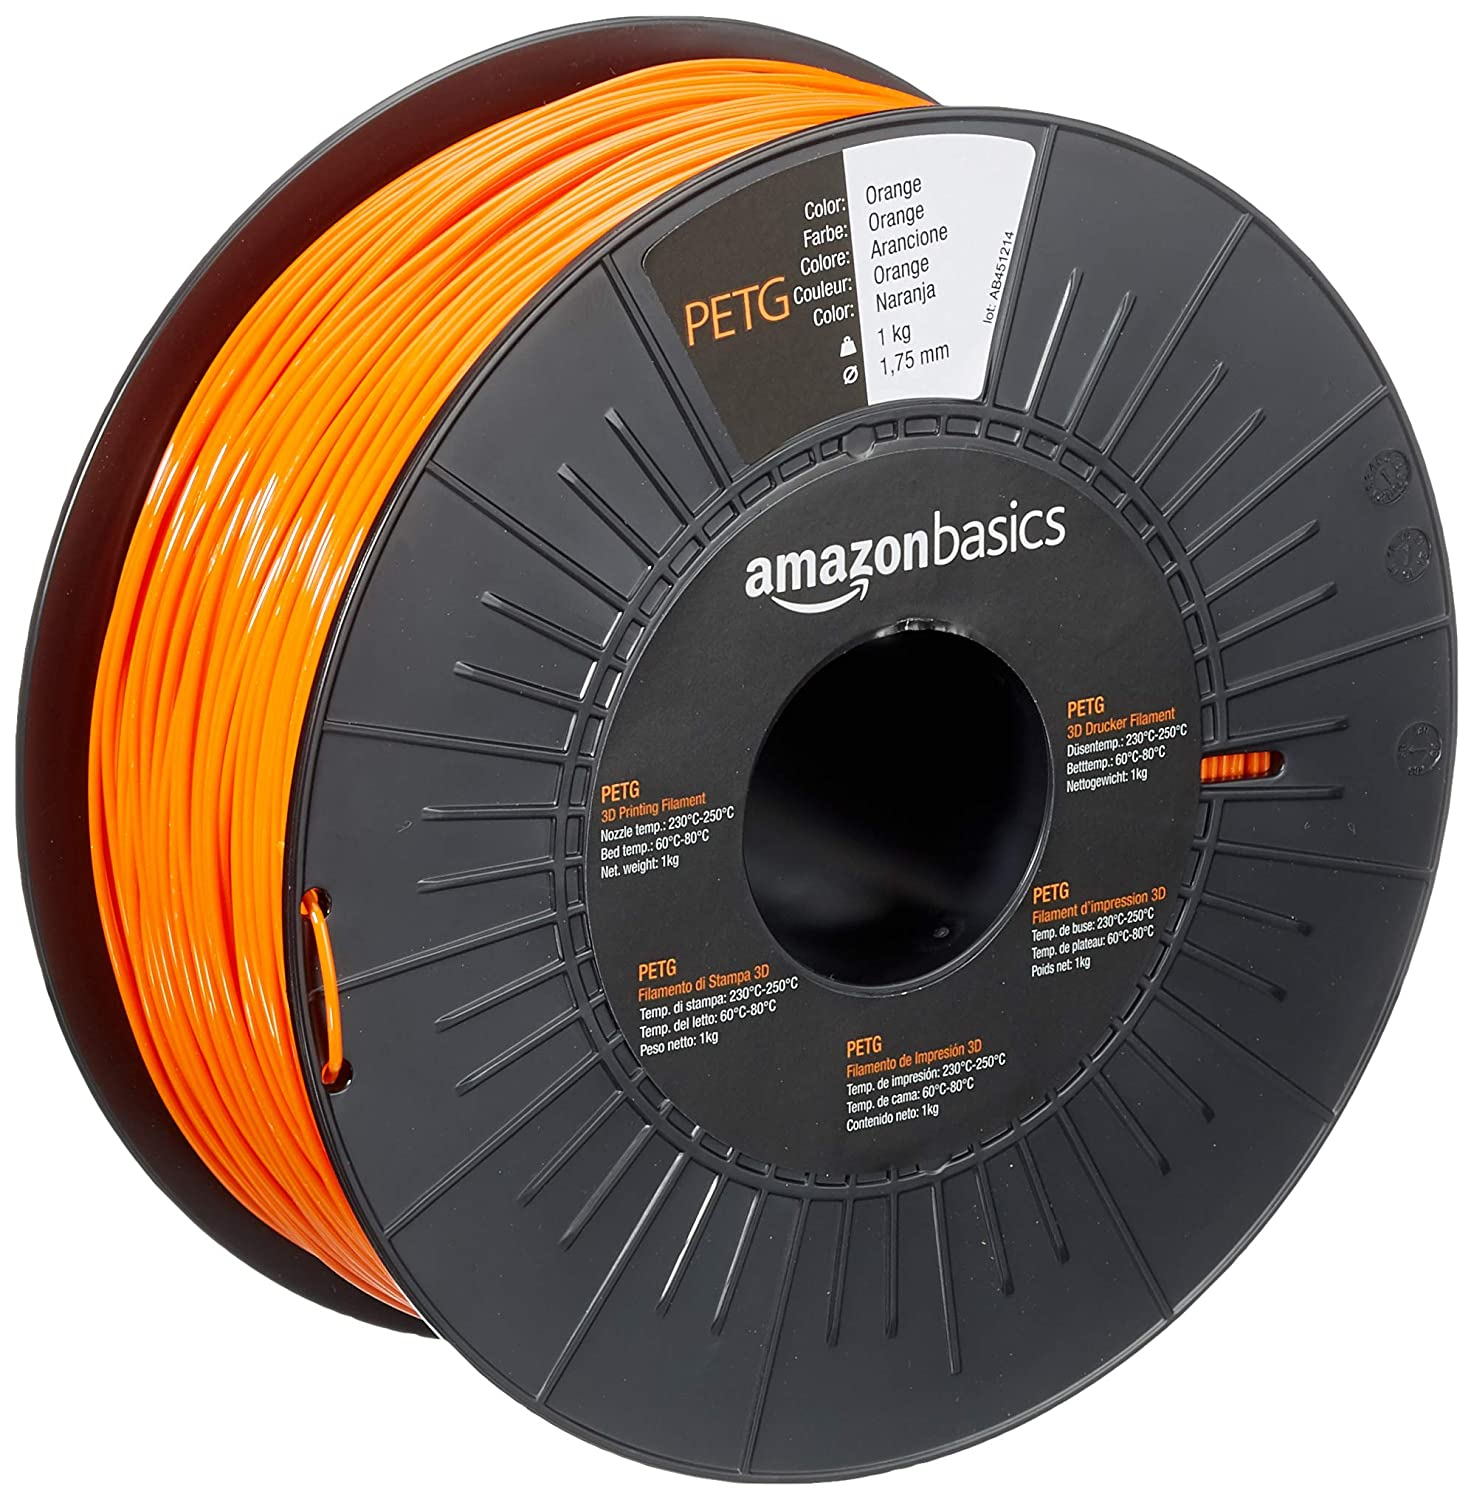 AmazonBasics PETG 3D Printer Filament, 1.75mm, Orange, 1 kg Spool